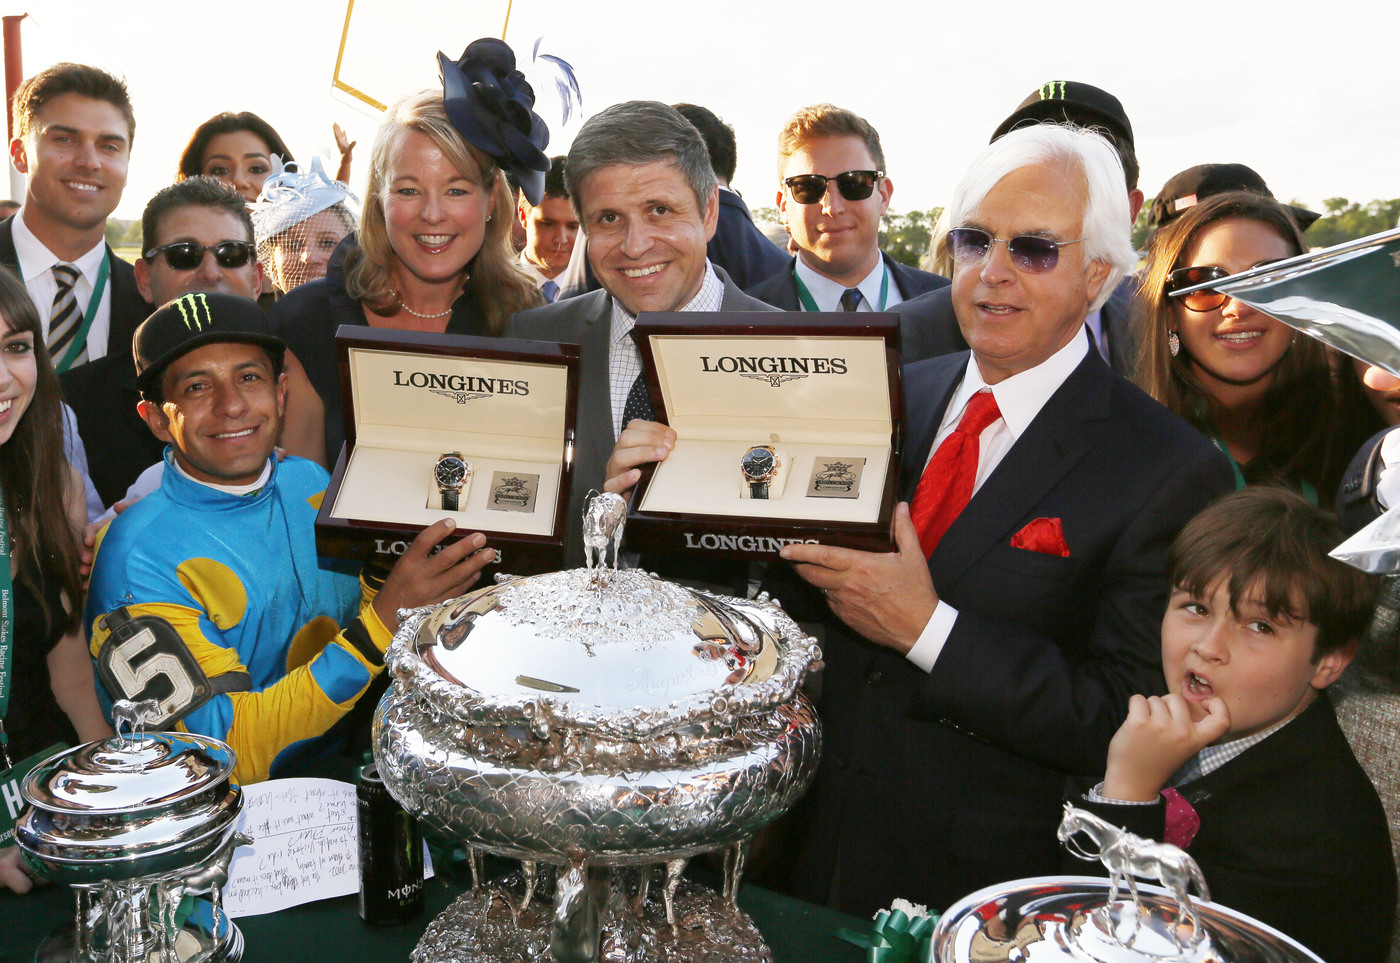 Longines Flat Racing Event: LONGINES TIMES AMERICAN PHAROAH'S TRIPLE CROWN VICTORY AT BELMONT STAKES 1